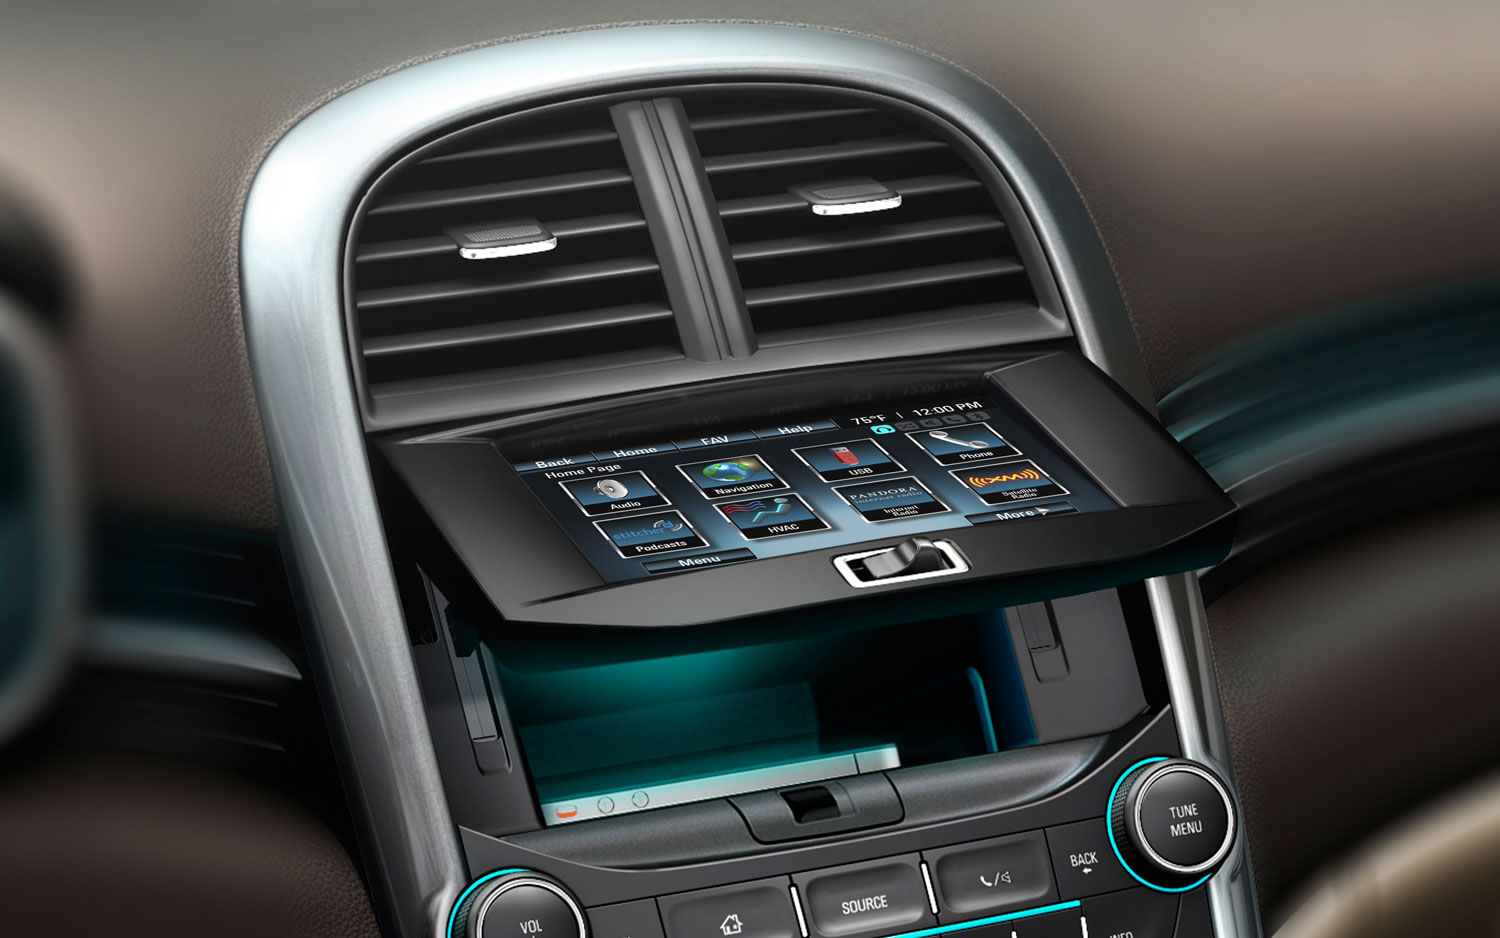 2013 Chevy Malibu Interior Teased Again; Camoed Car Gets Video Cameo